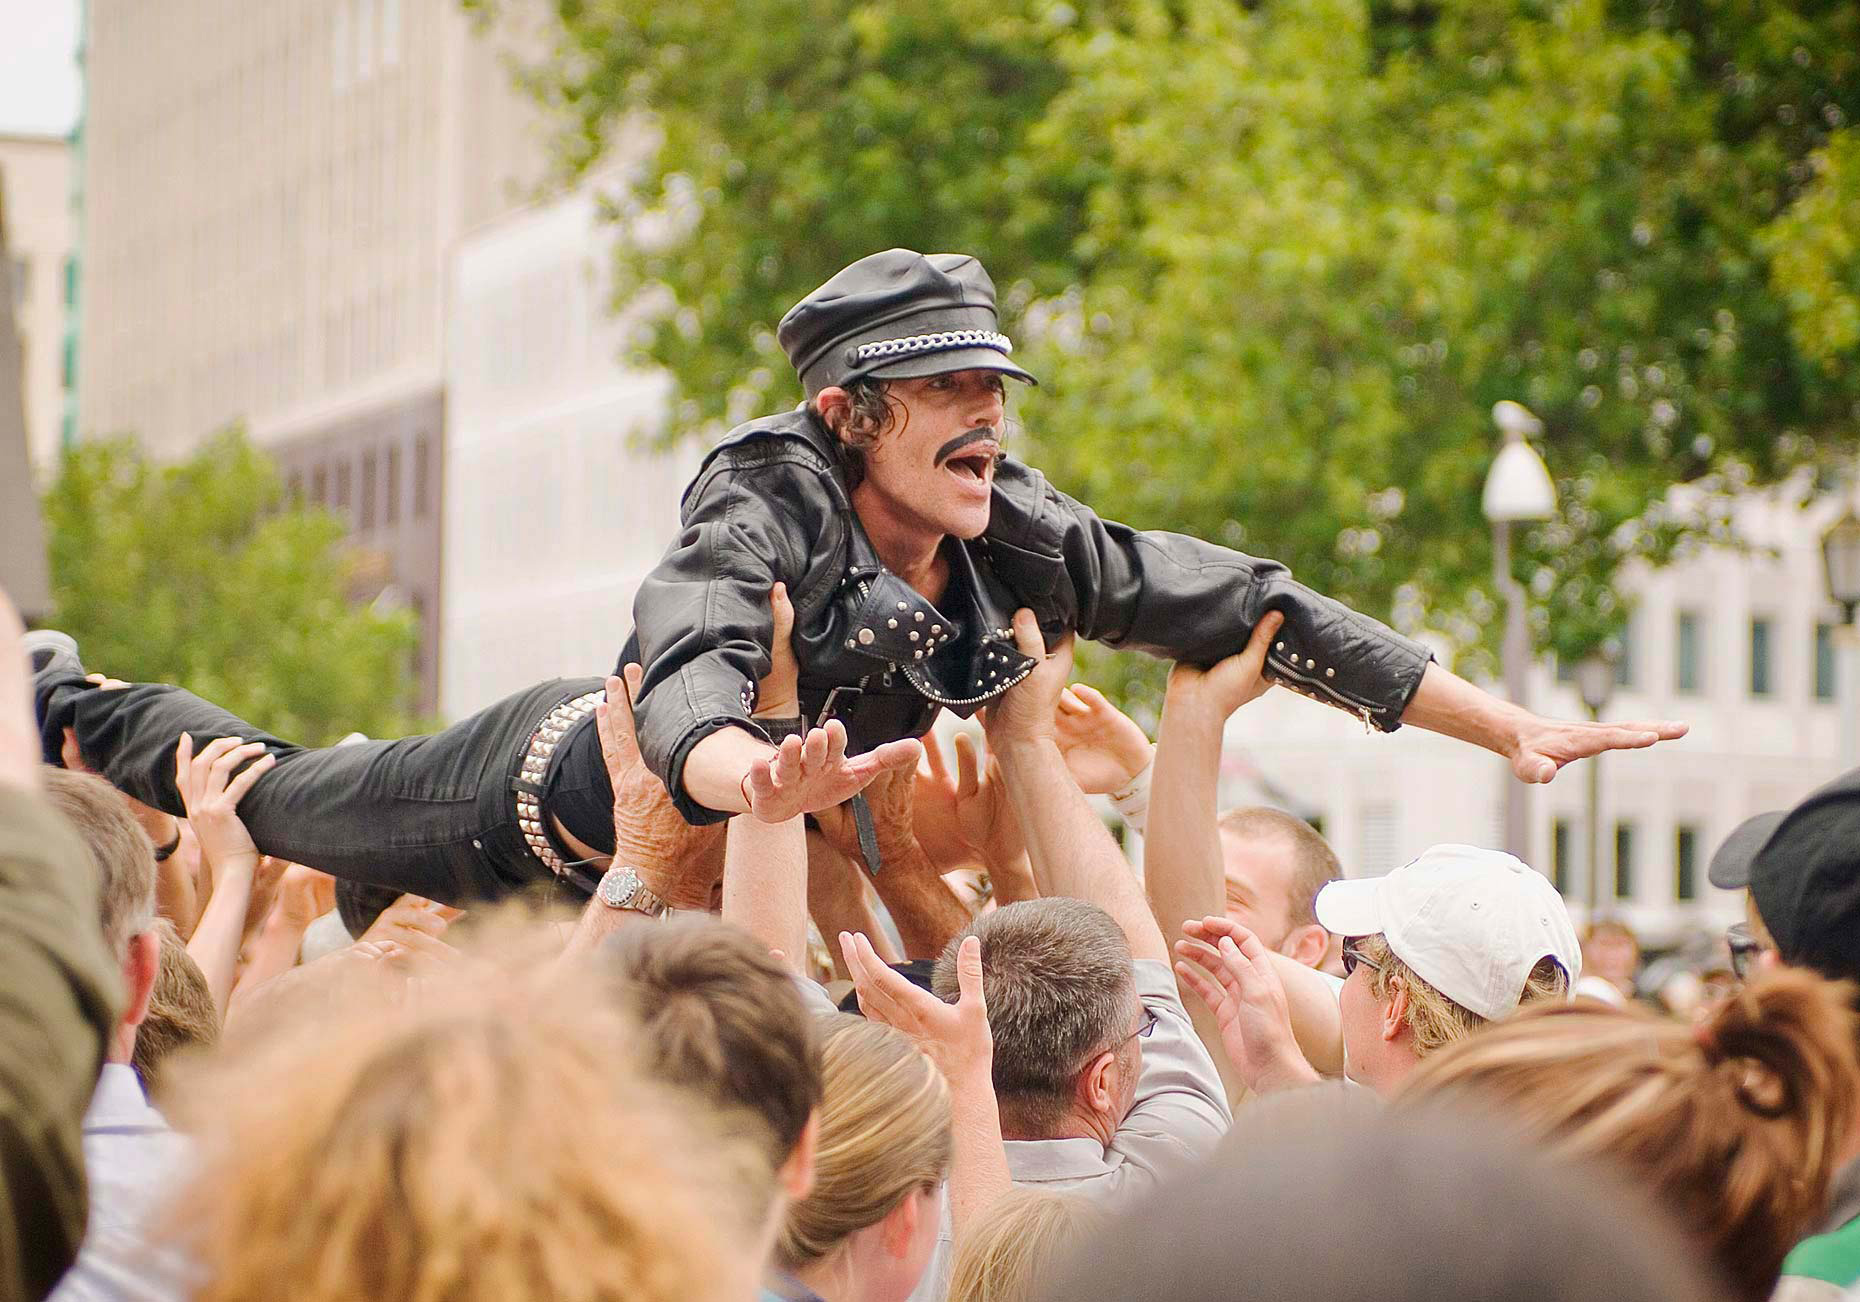 FEA_PhotoReporters_Mario-queen-of-the-circus-crowd-surfing-at-World-Buskers-Festival_Christchurch_NZ